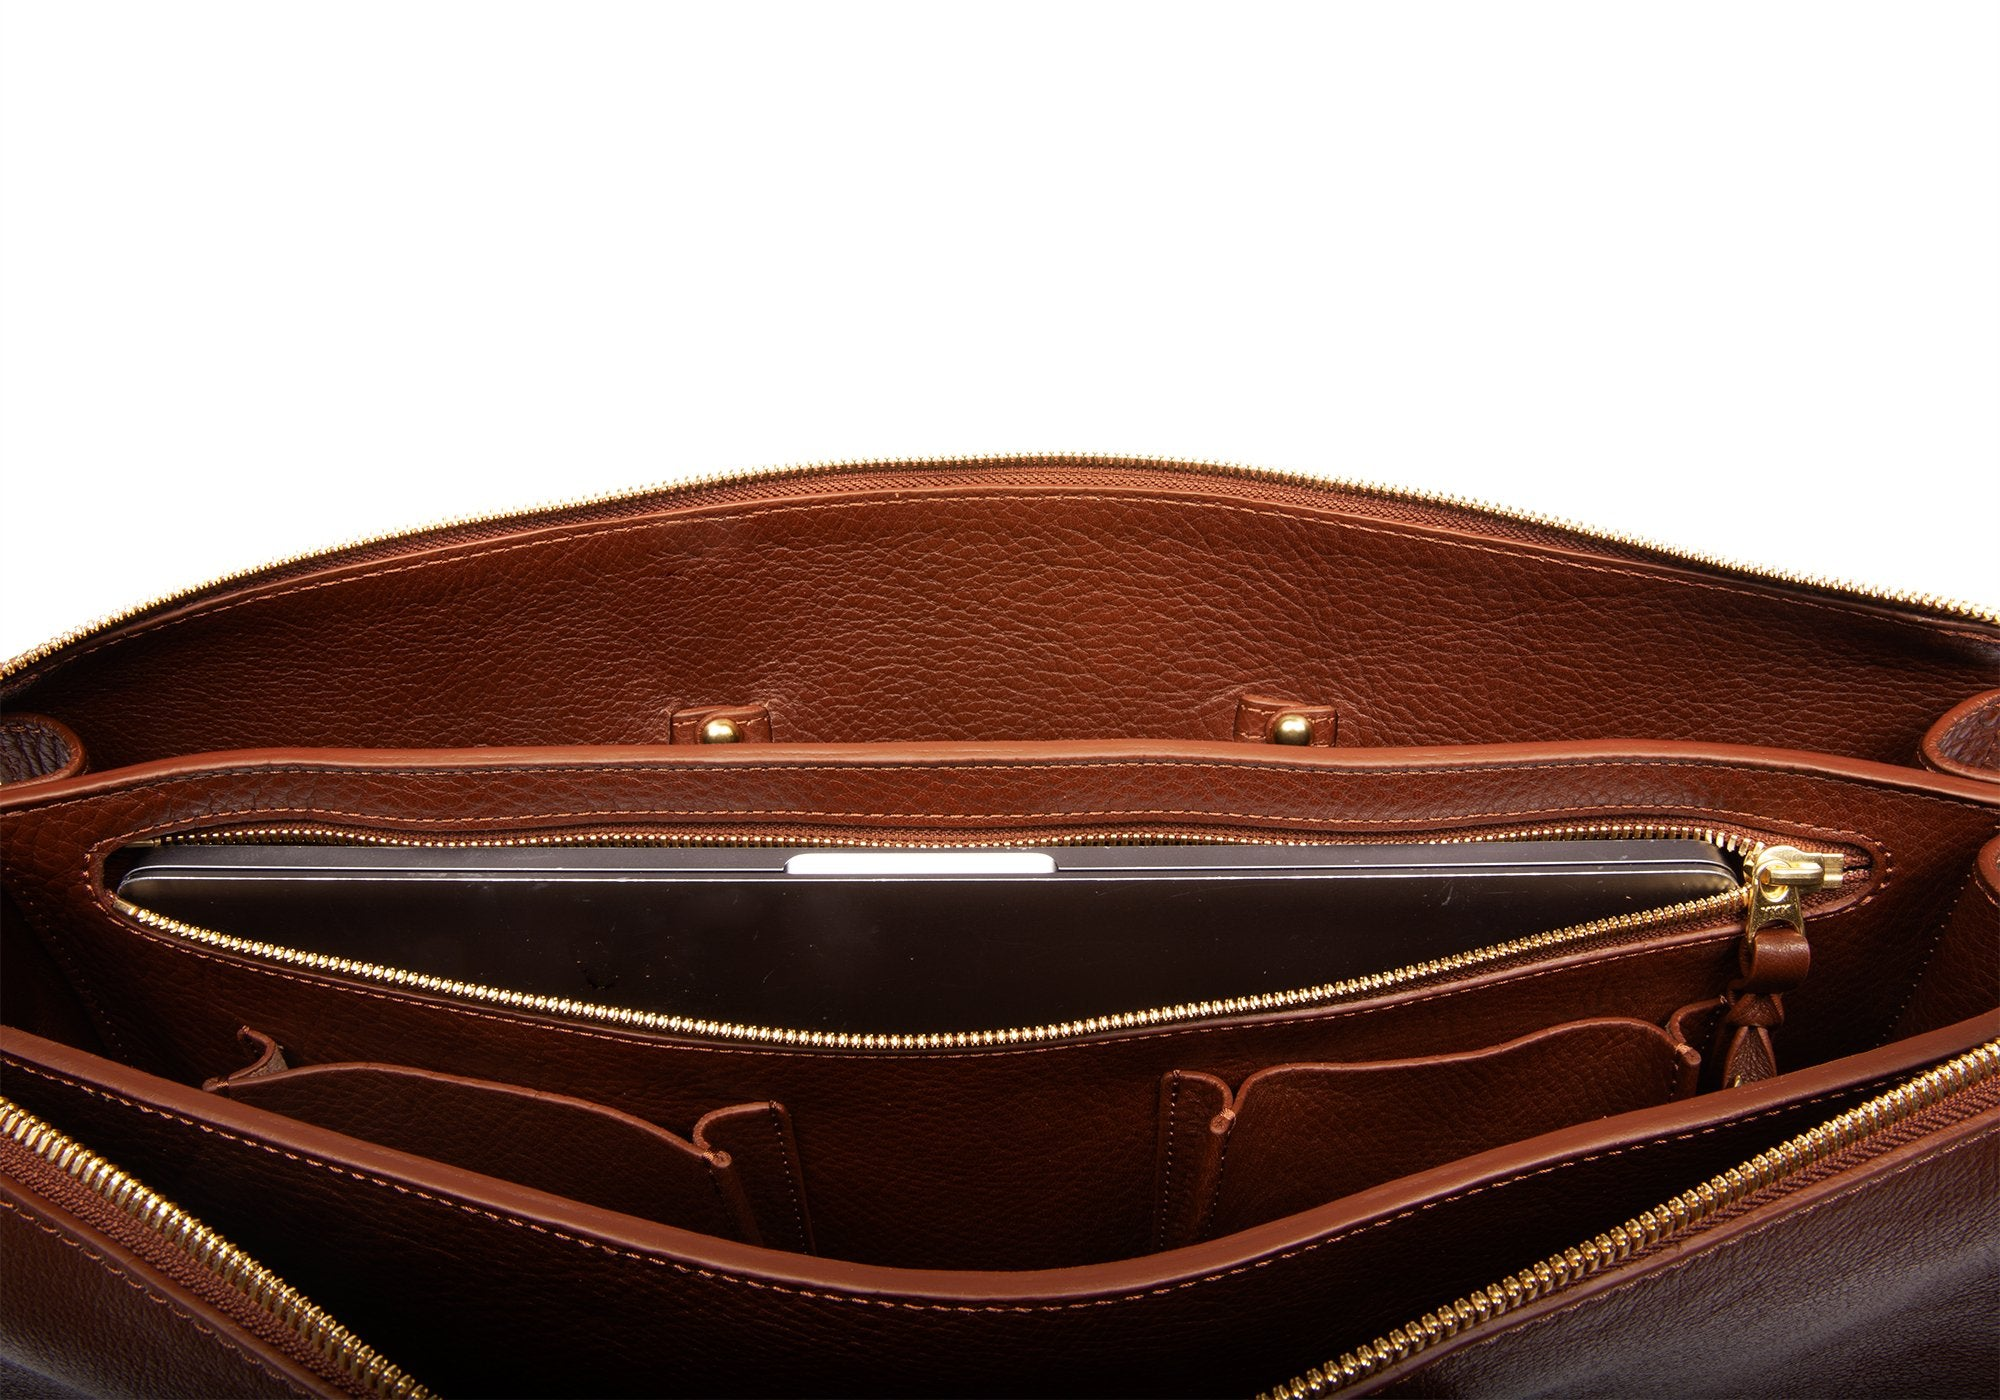 The Triumph Briefcase Chestnut